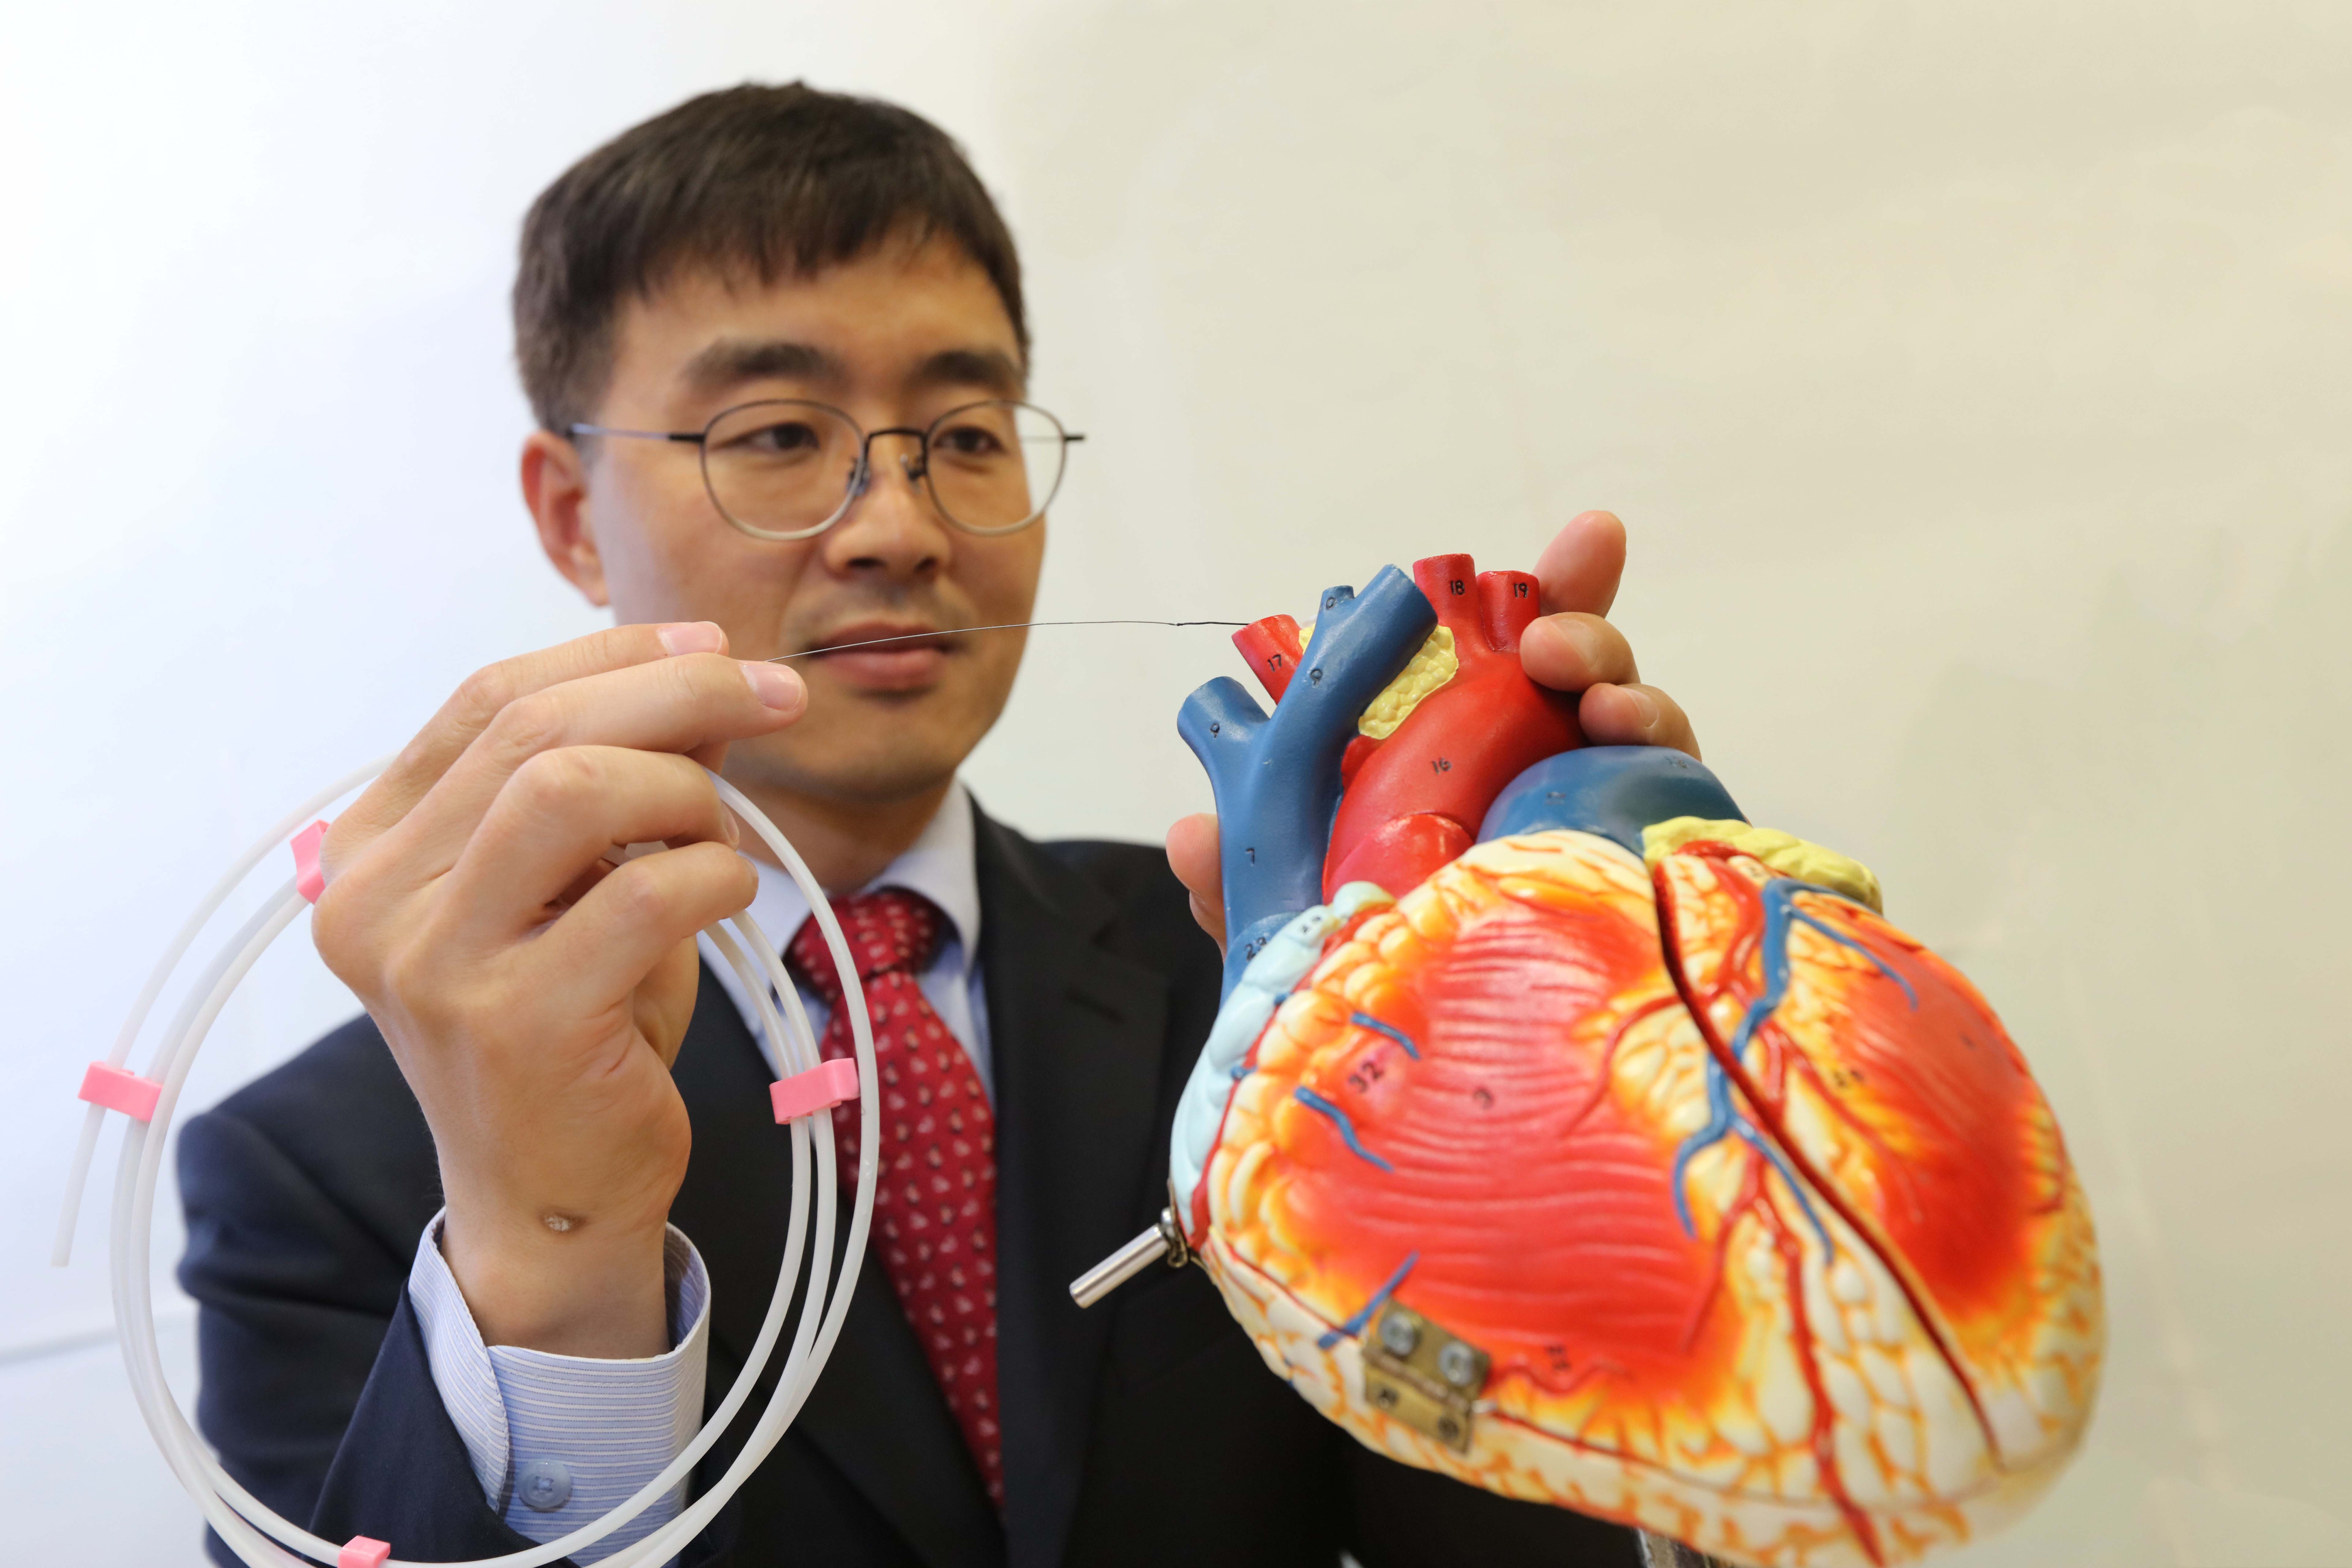 Prof. Hongsoo CHOI demonstrates how a guidewire-based microbot may be used for a robot-assisted percutaneous coronary intervention procedure.